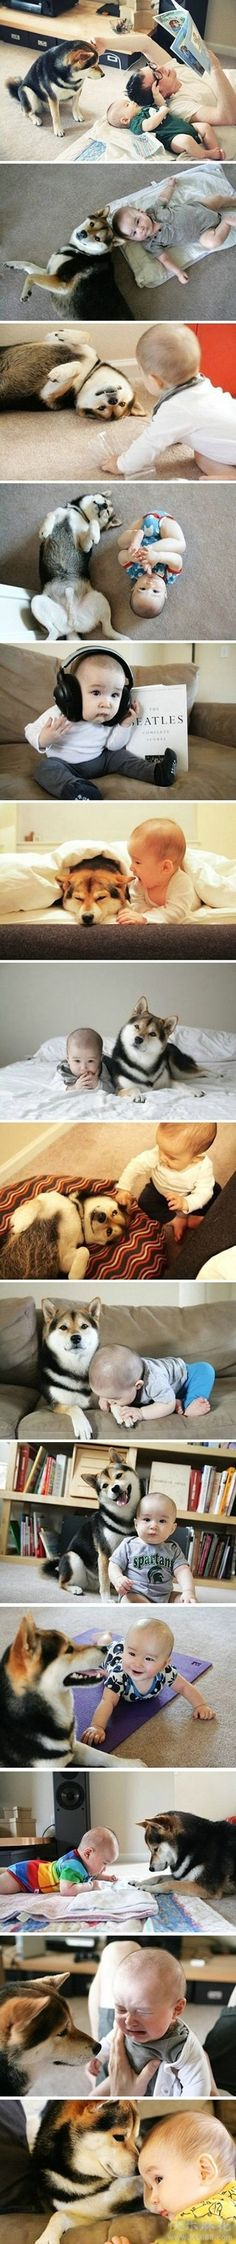 Hope I can get some pictures like this of Chevy and our future baby